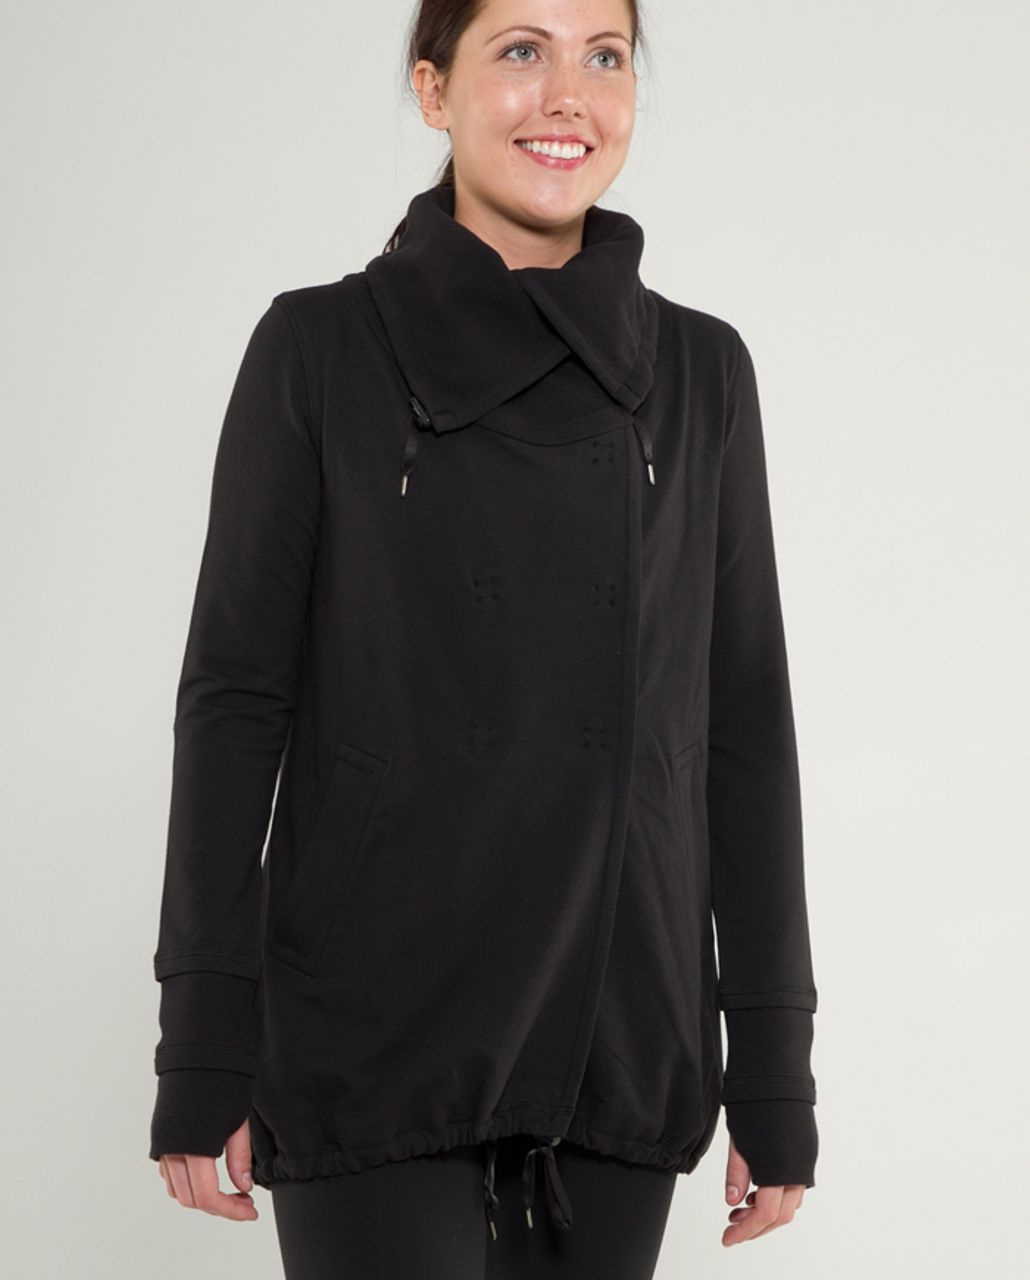 Lululemon Gratitude Wrap - Black